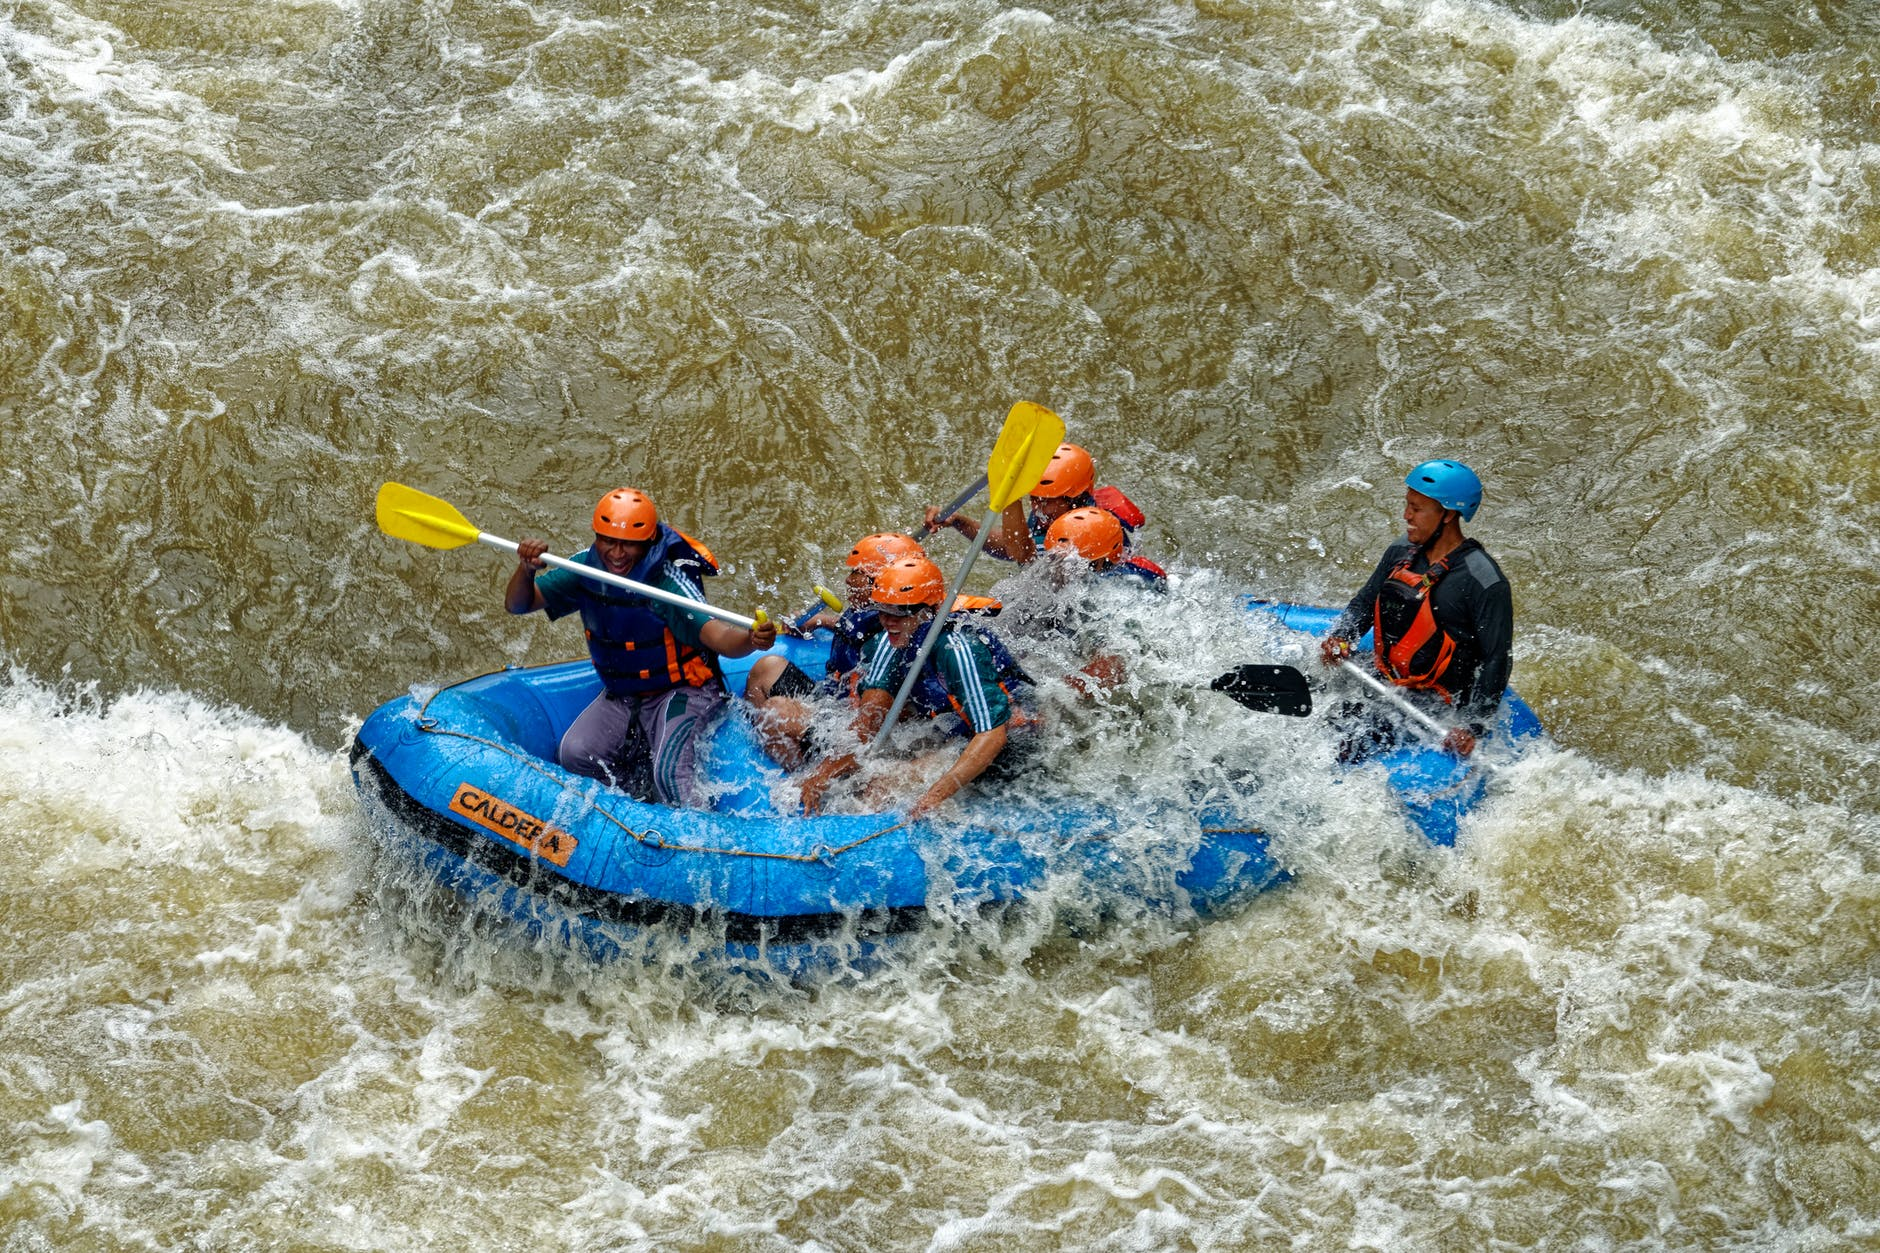 The Best Ocoee River Rafting Experience on Ocoee River at Tennessee